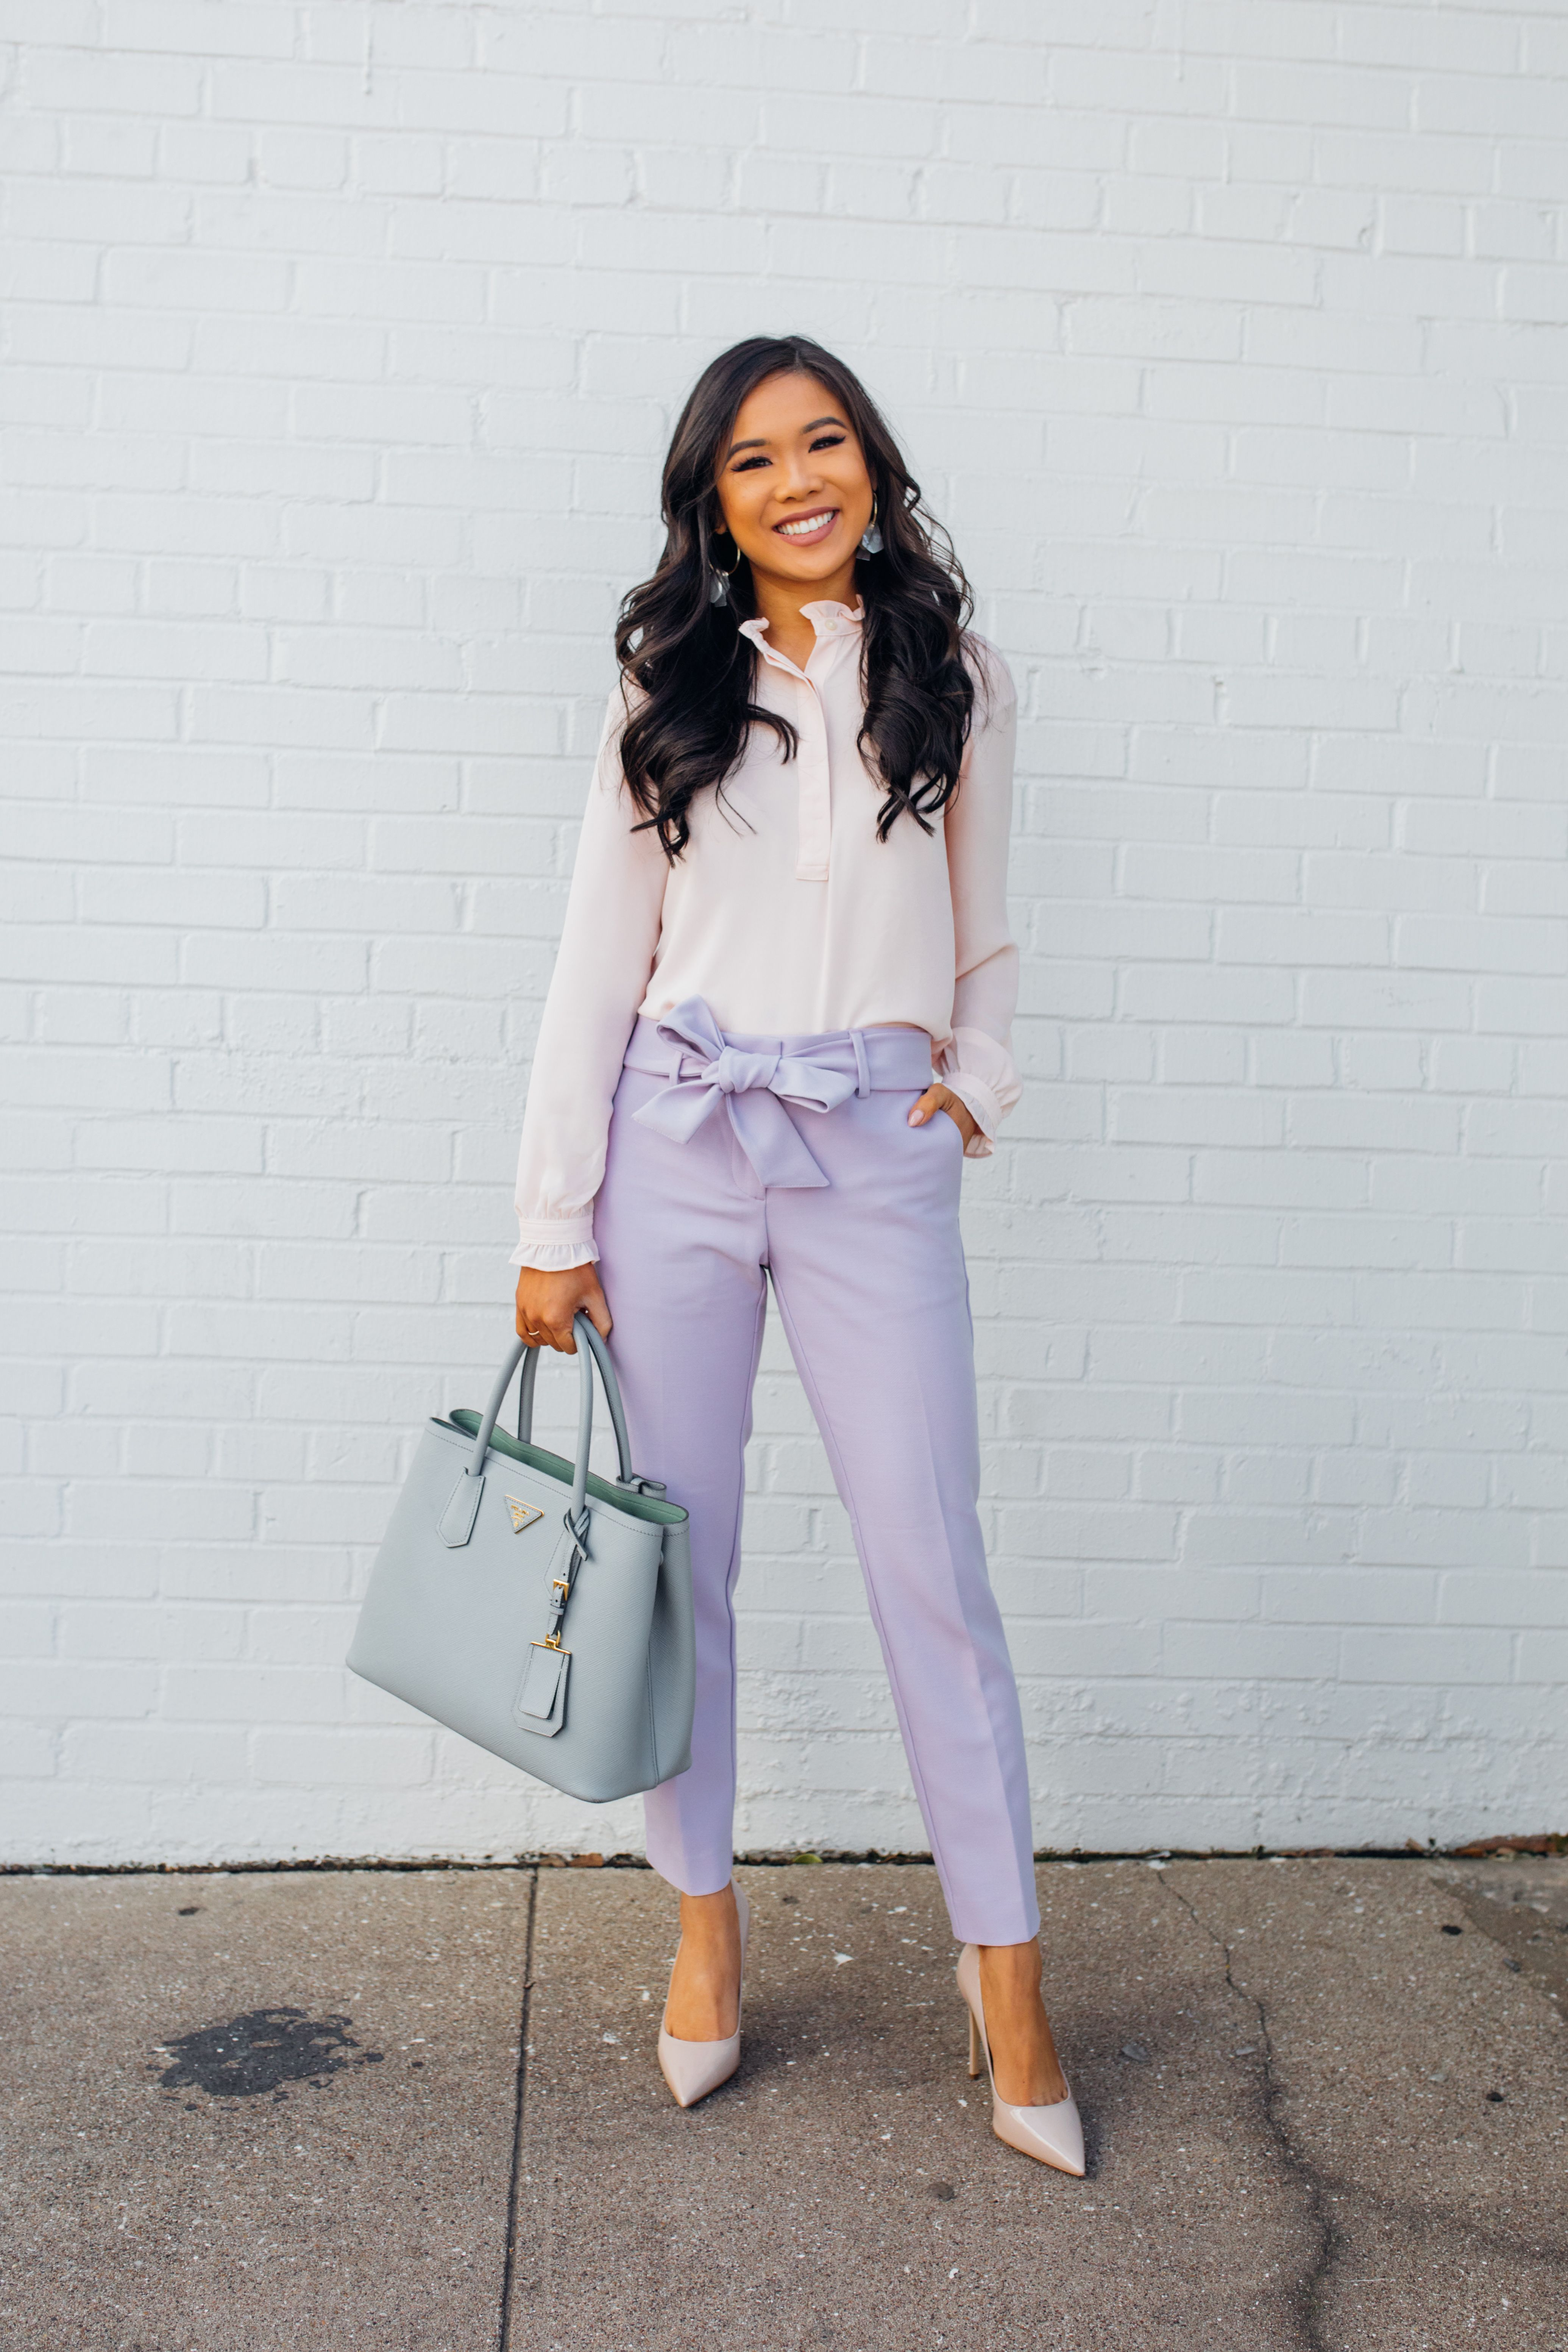 8c5fa7f3b Blogger Hoang-Kim wears a pair of lavender tie-waist pants for spring    pastel outfit pastel outfits aesthetic pastel outfit spring pastel outfits  ...